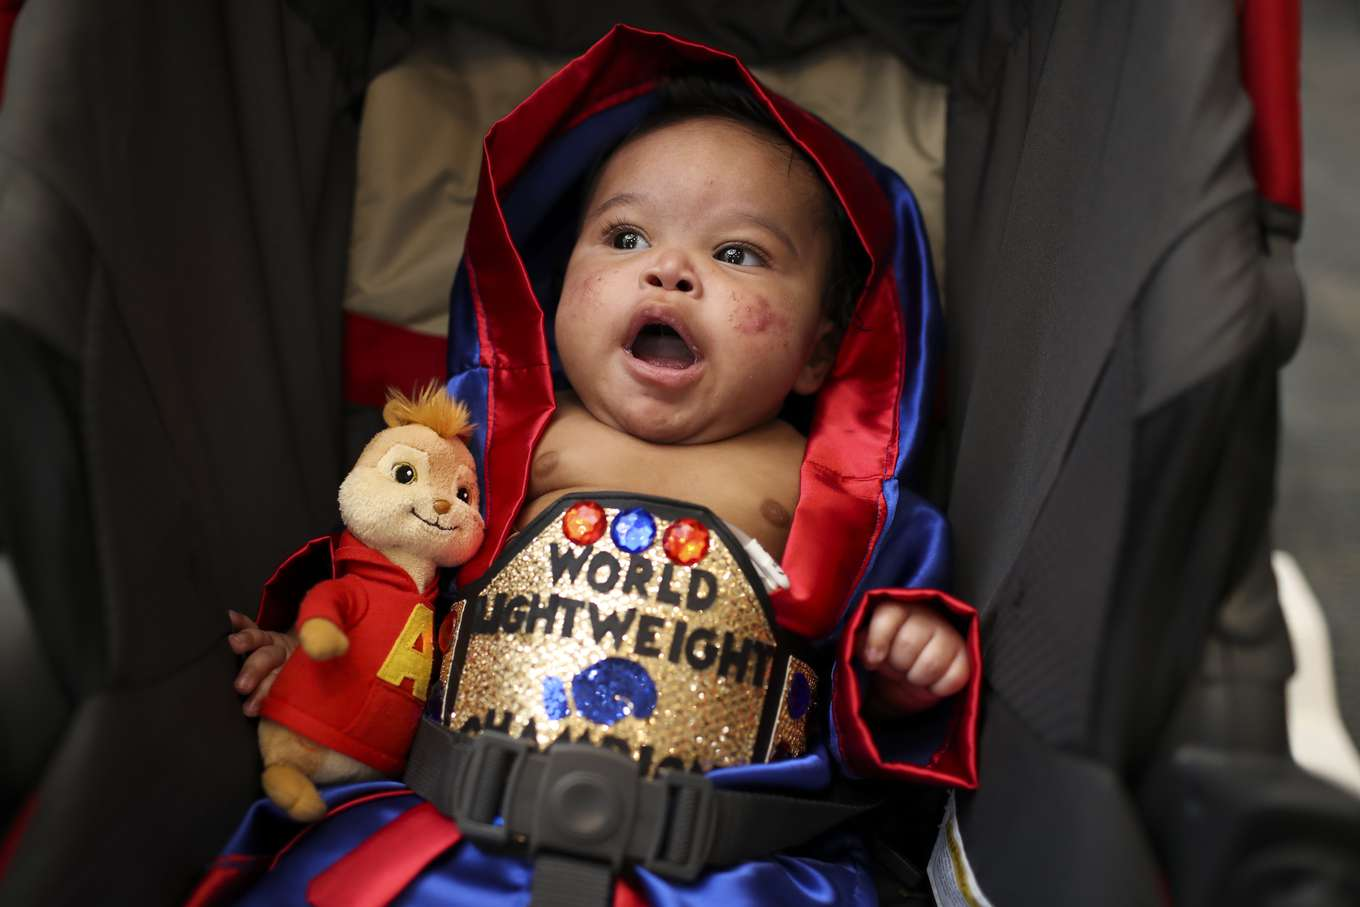 Elijah Weaver, 5 1/2 months, yawns in his stroller during a Halloween Parade for children at St. Joseph's Hospital, in Tampa, Fla. on October 31, 2017. Costumed pediatric patients trick or treated through the hospital campus, stopping along the parade route to pick up candy and gifts.